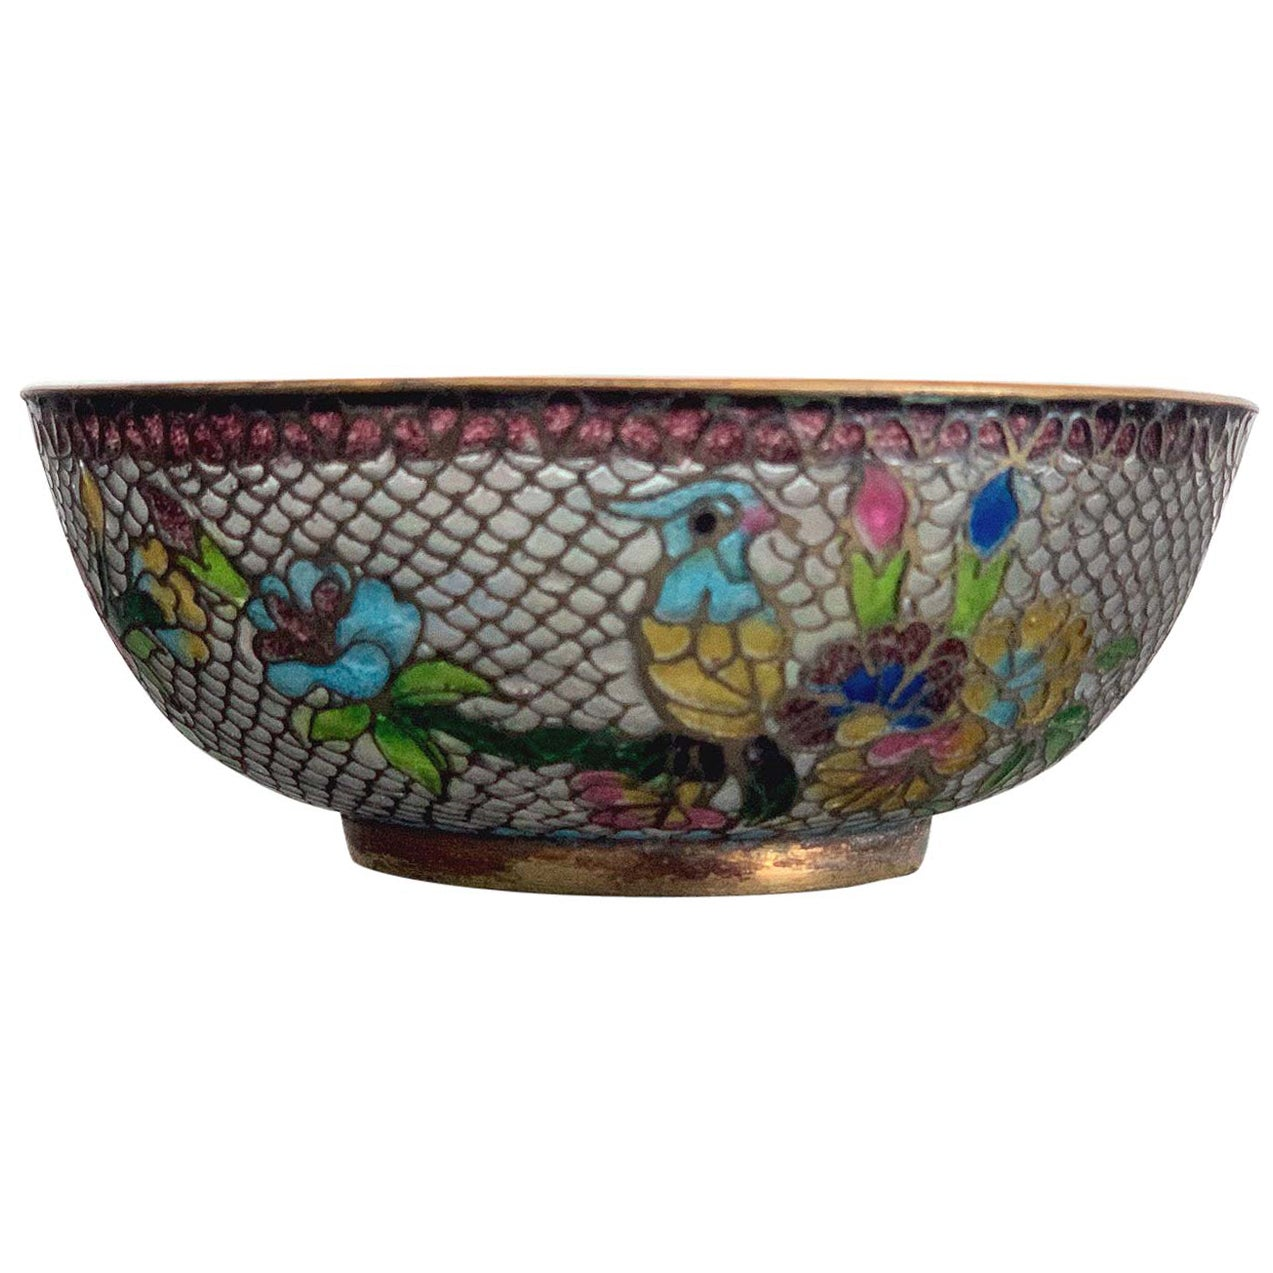 Chinese Plique-a-Jour Bowl